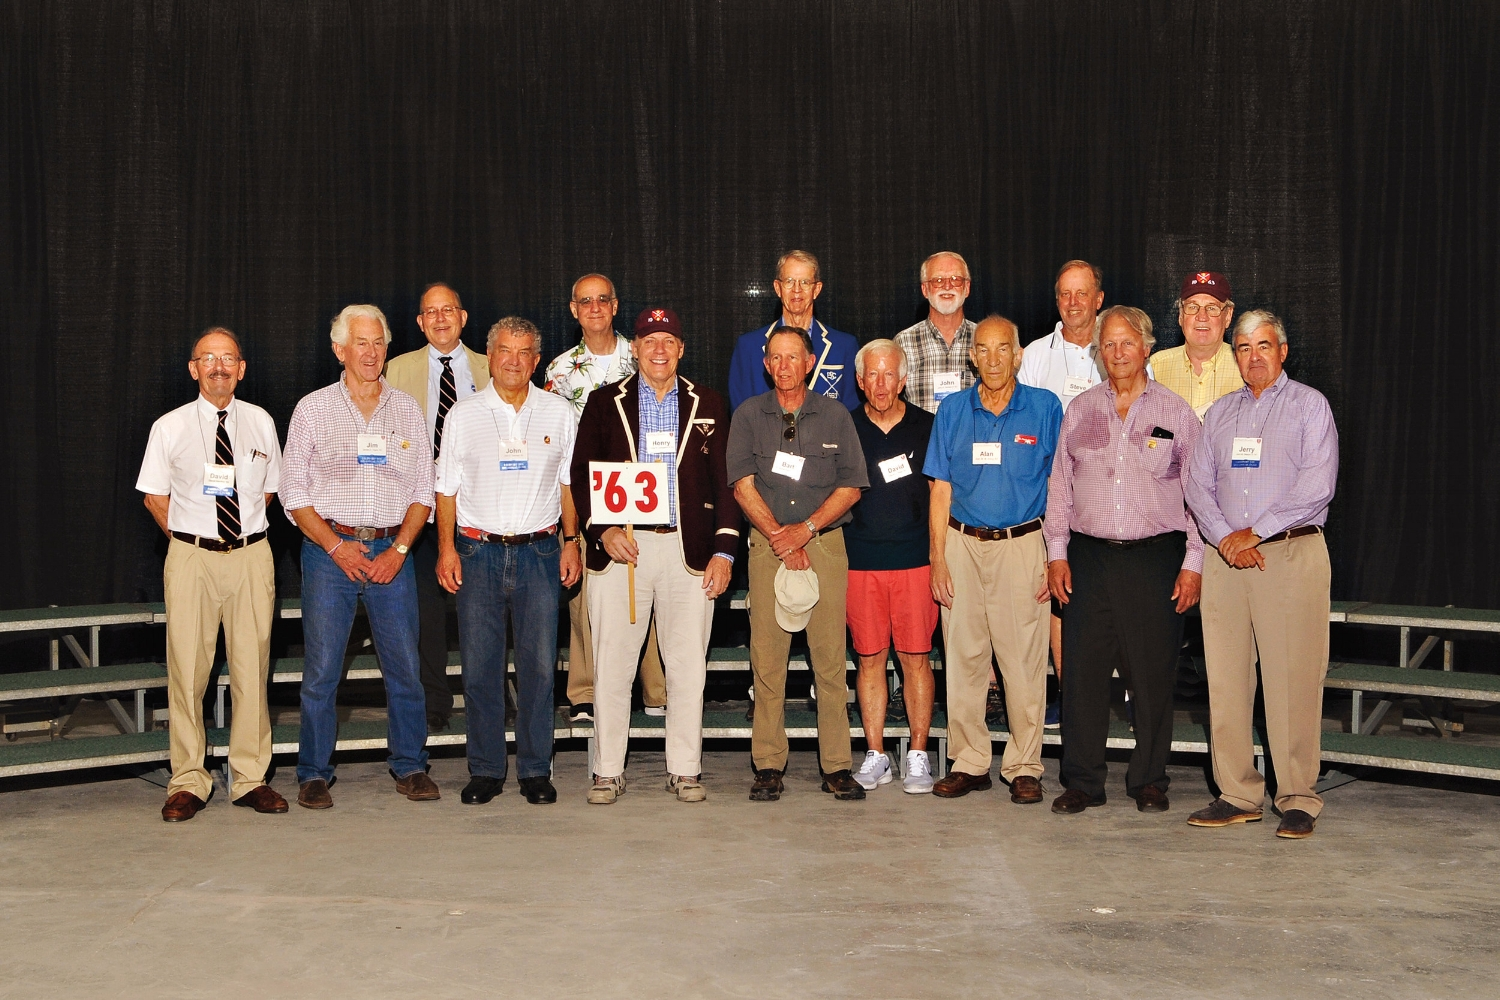 (L. to r.), row 1: David Gordon, Jim Taylor, John Groman, Henry Livingston, Bart Baldwin, David Allan, Alan Irving, John Ahlgren, Jerry Nelson; row 2: Cassius Webb, Bill Wright, Ryland Howard, John Gaines, Steve Orr, and Dave Evans.